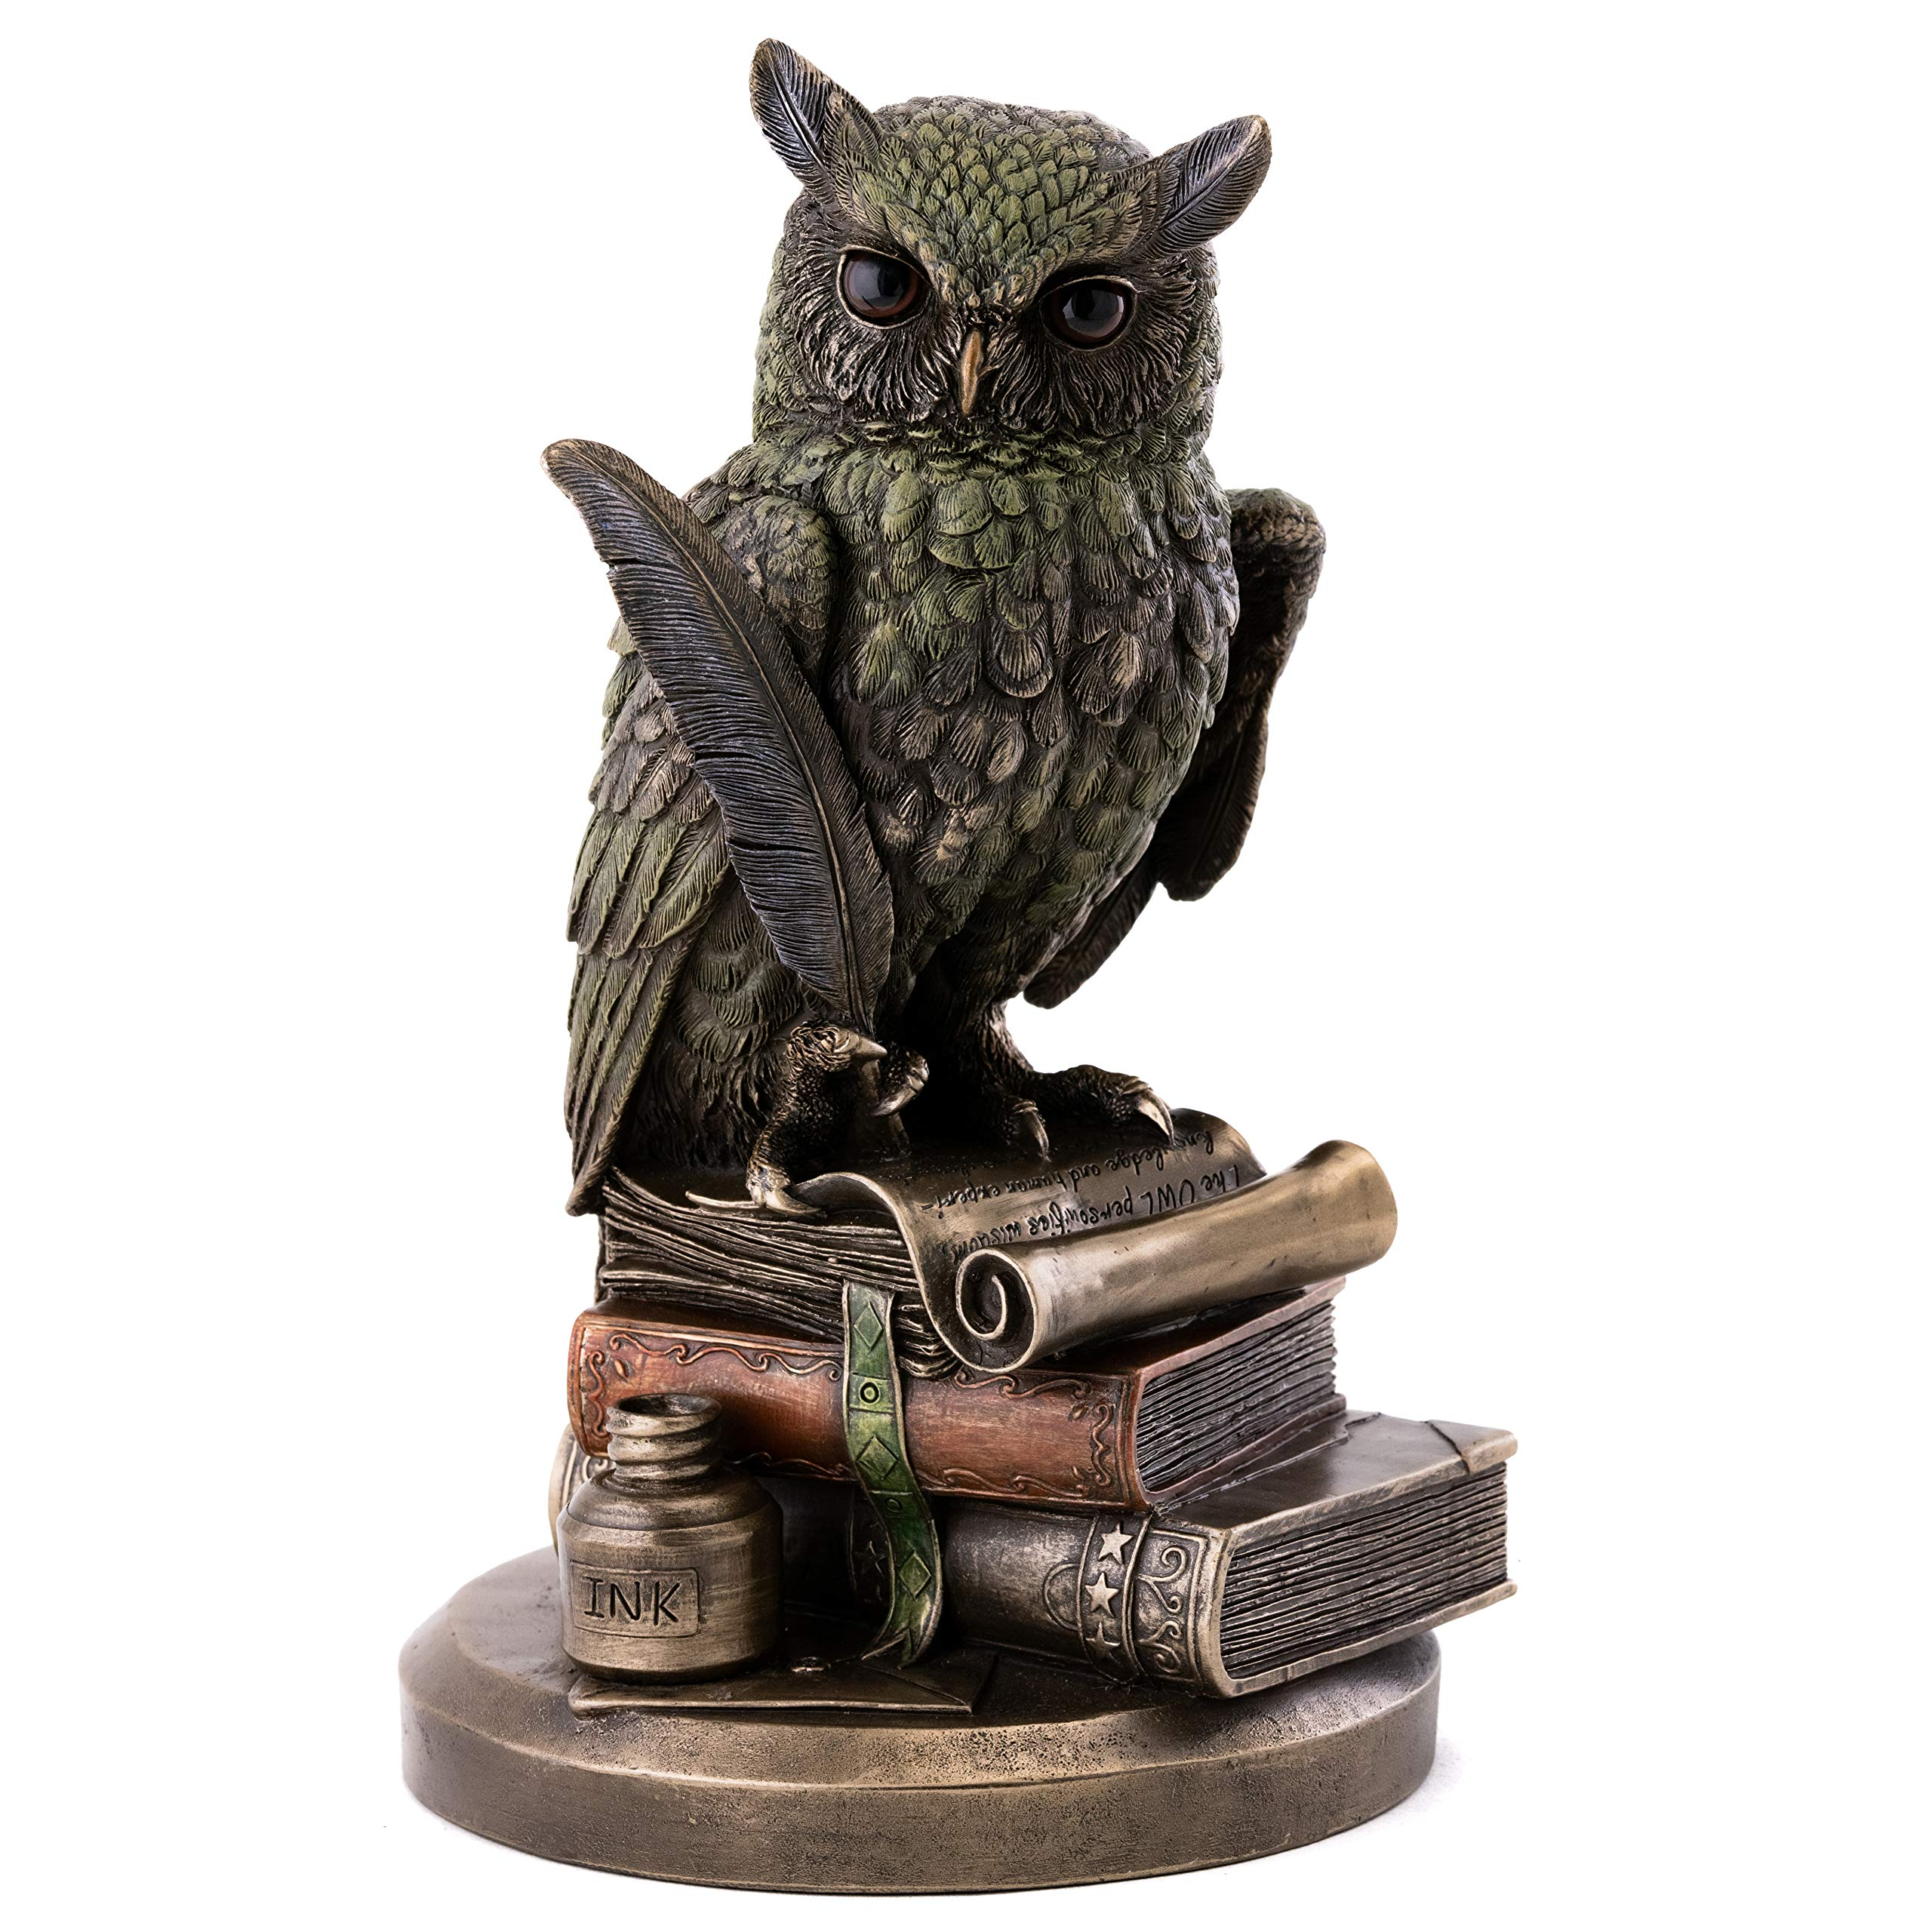 Top Collection Eagle Owl on Books Statue - Owl of Wisdom and Knowledge with Feather Pen and Ink Sculpture in Premium Cold Cast Bronze - 8.75-Inch Collectible Animal Figurine